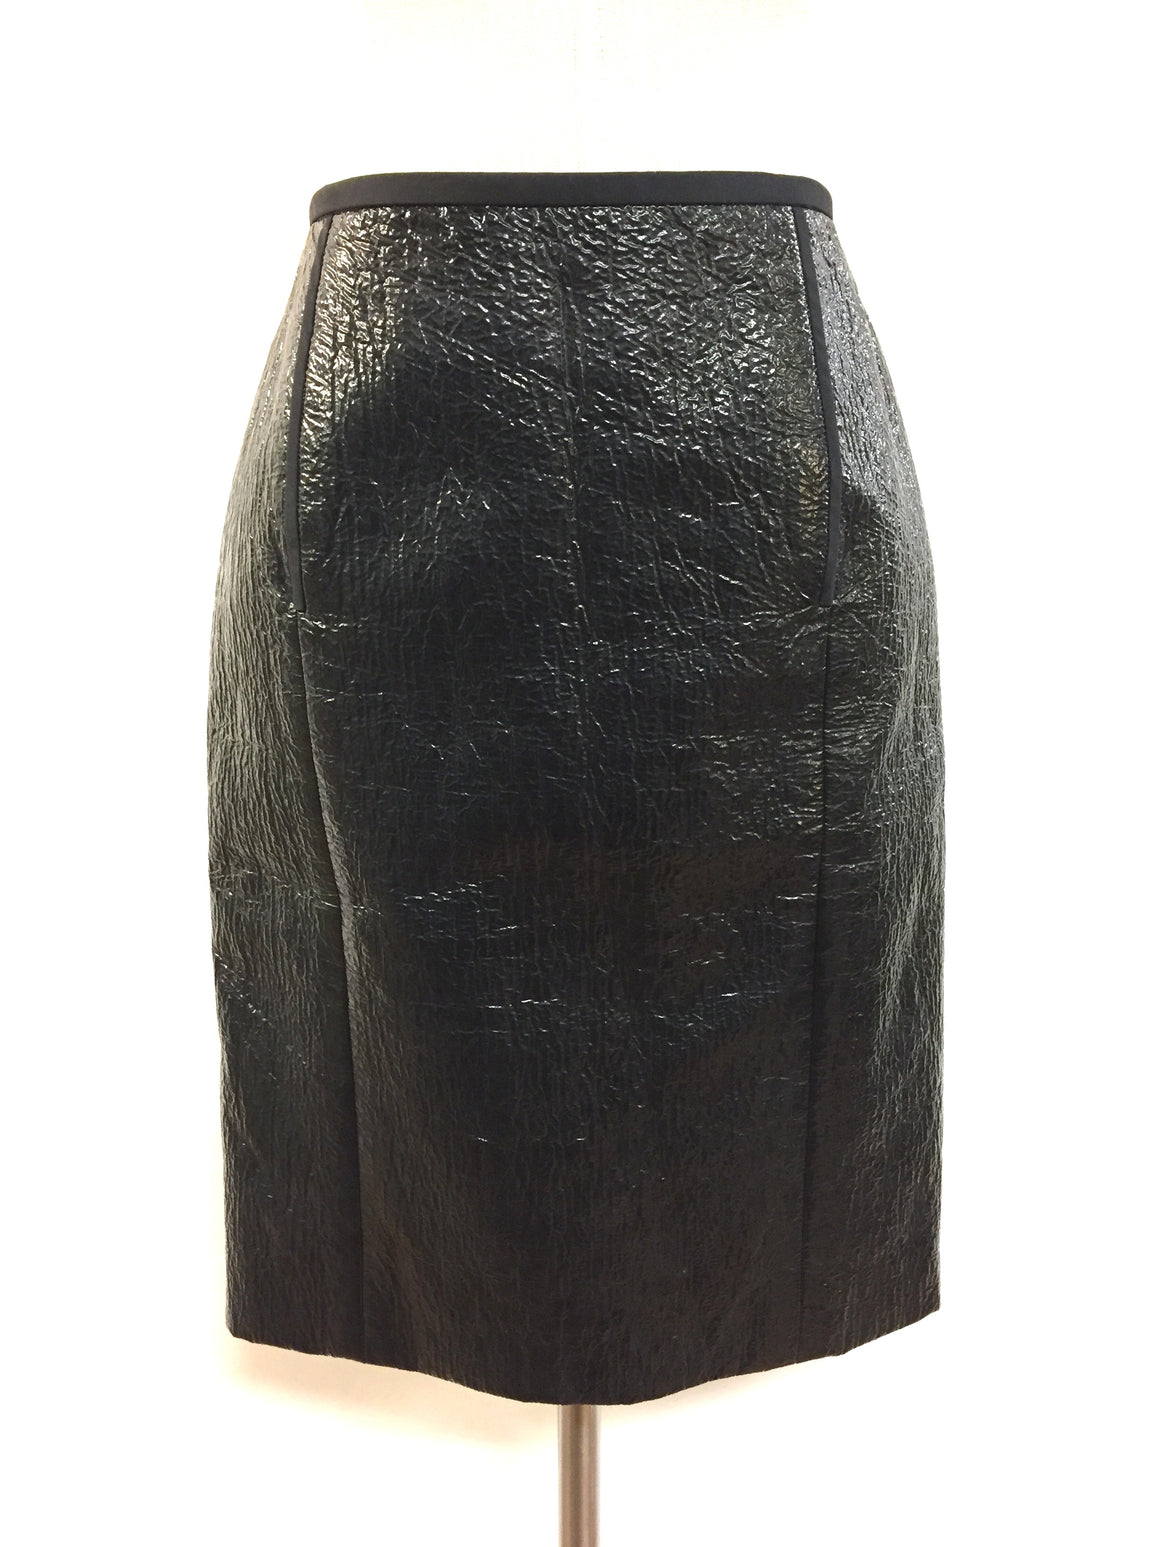 "LANVIN  Black Crinkled Glossy Polyurethane Blend Knee-Length Pencil Skirt ""From the 10th Anniversary Collection"" Size: 6 - Estimated"